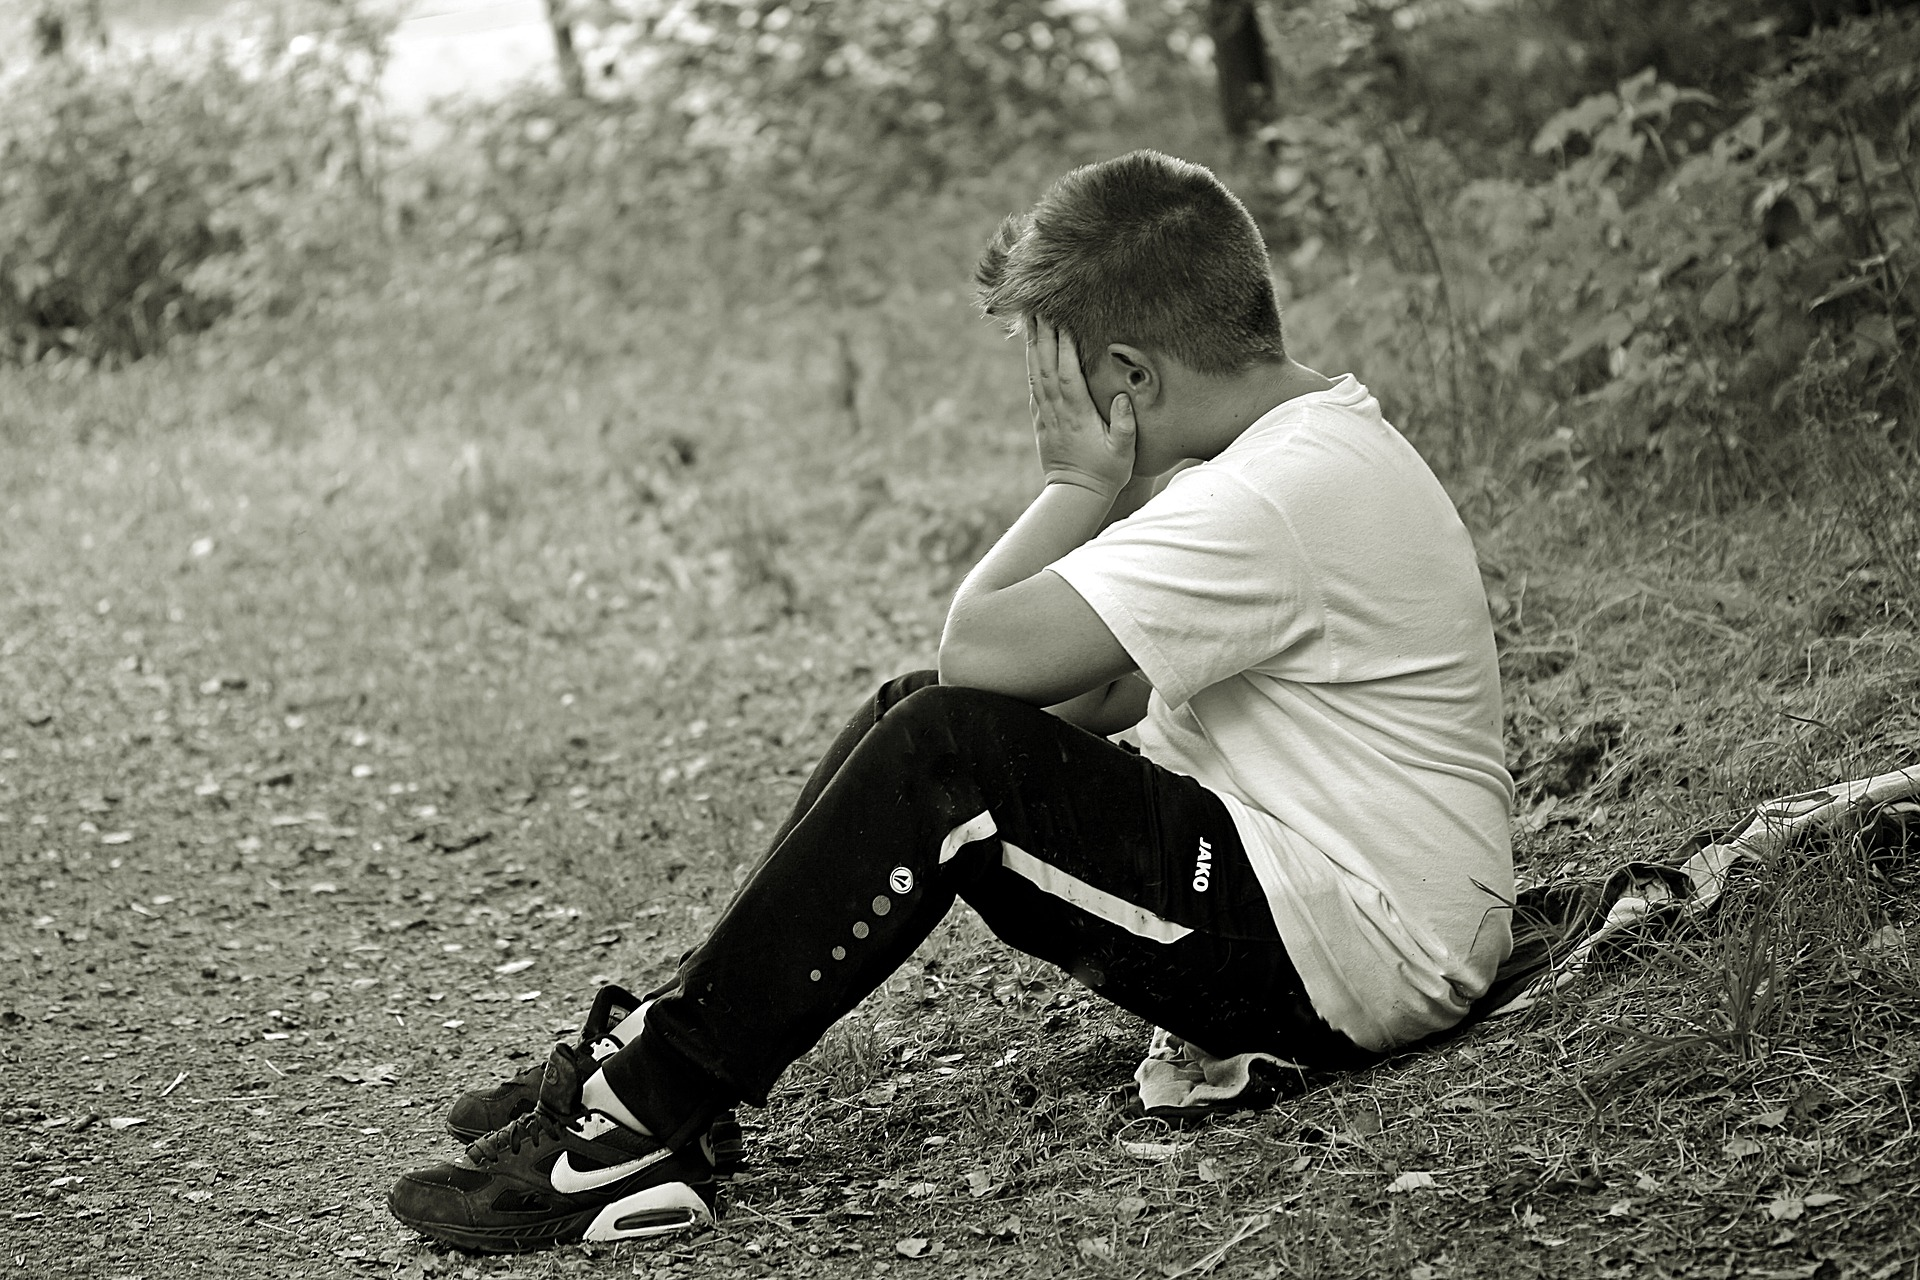 Children who are bullied are more likely to suffer with mental health issues